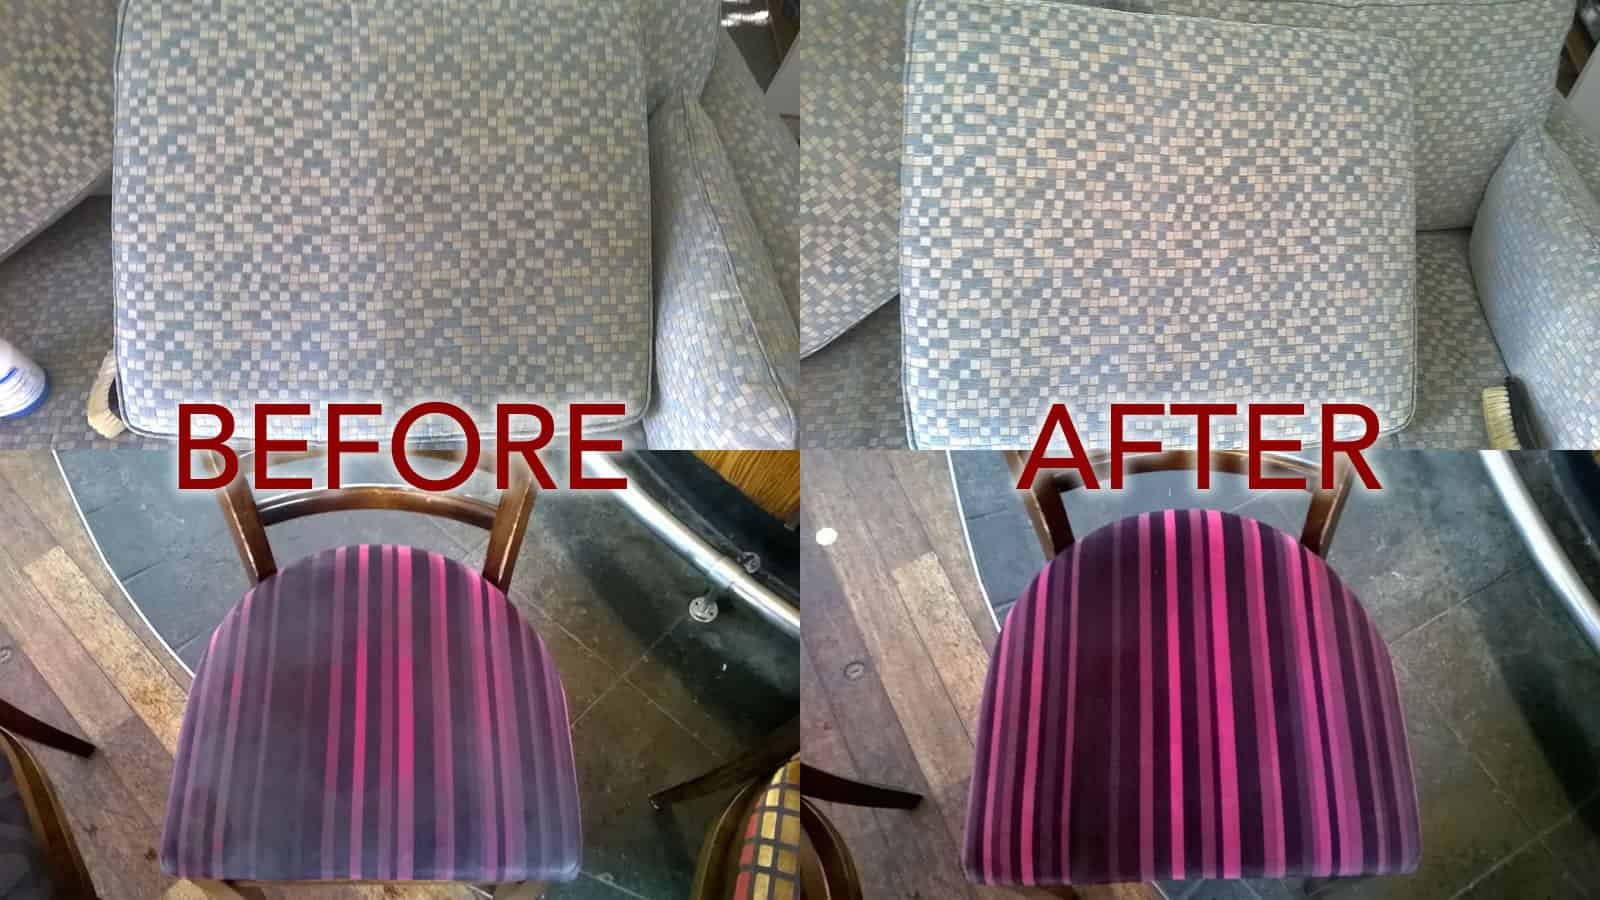 Upholstery and cushions before professional cleaning and after being cleaned professionally.